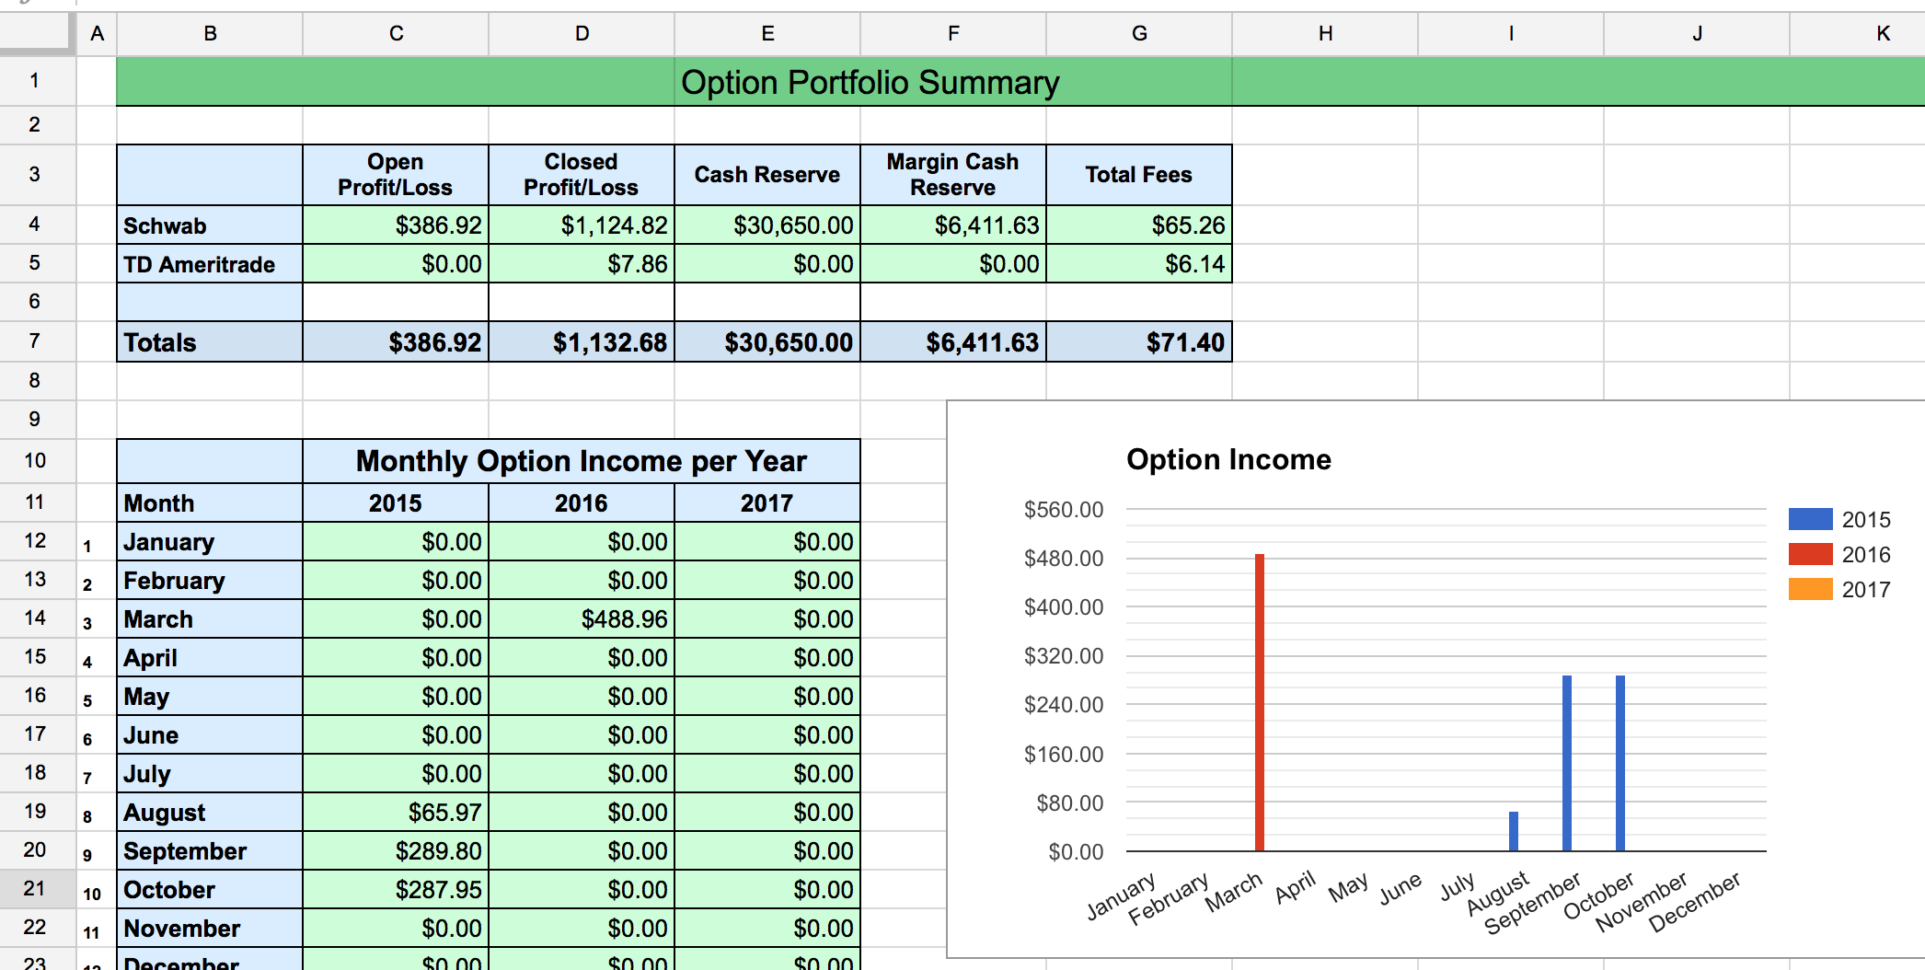 annualised hours spreadsheet  Annualised Hours Spreadsheet Inside Options Tracker Spreadsheet – Two Investing Annualised Hours Spreadsheet Printable Spreadshee